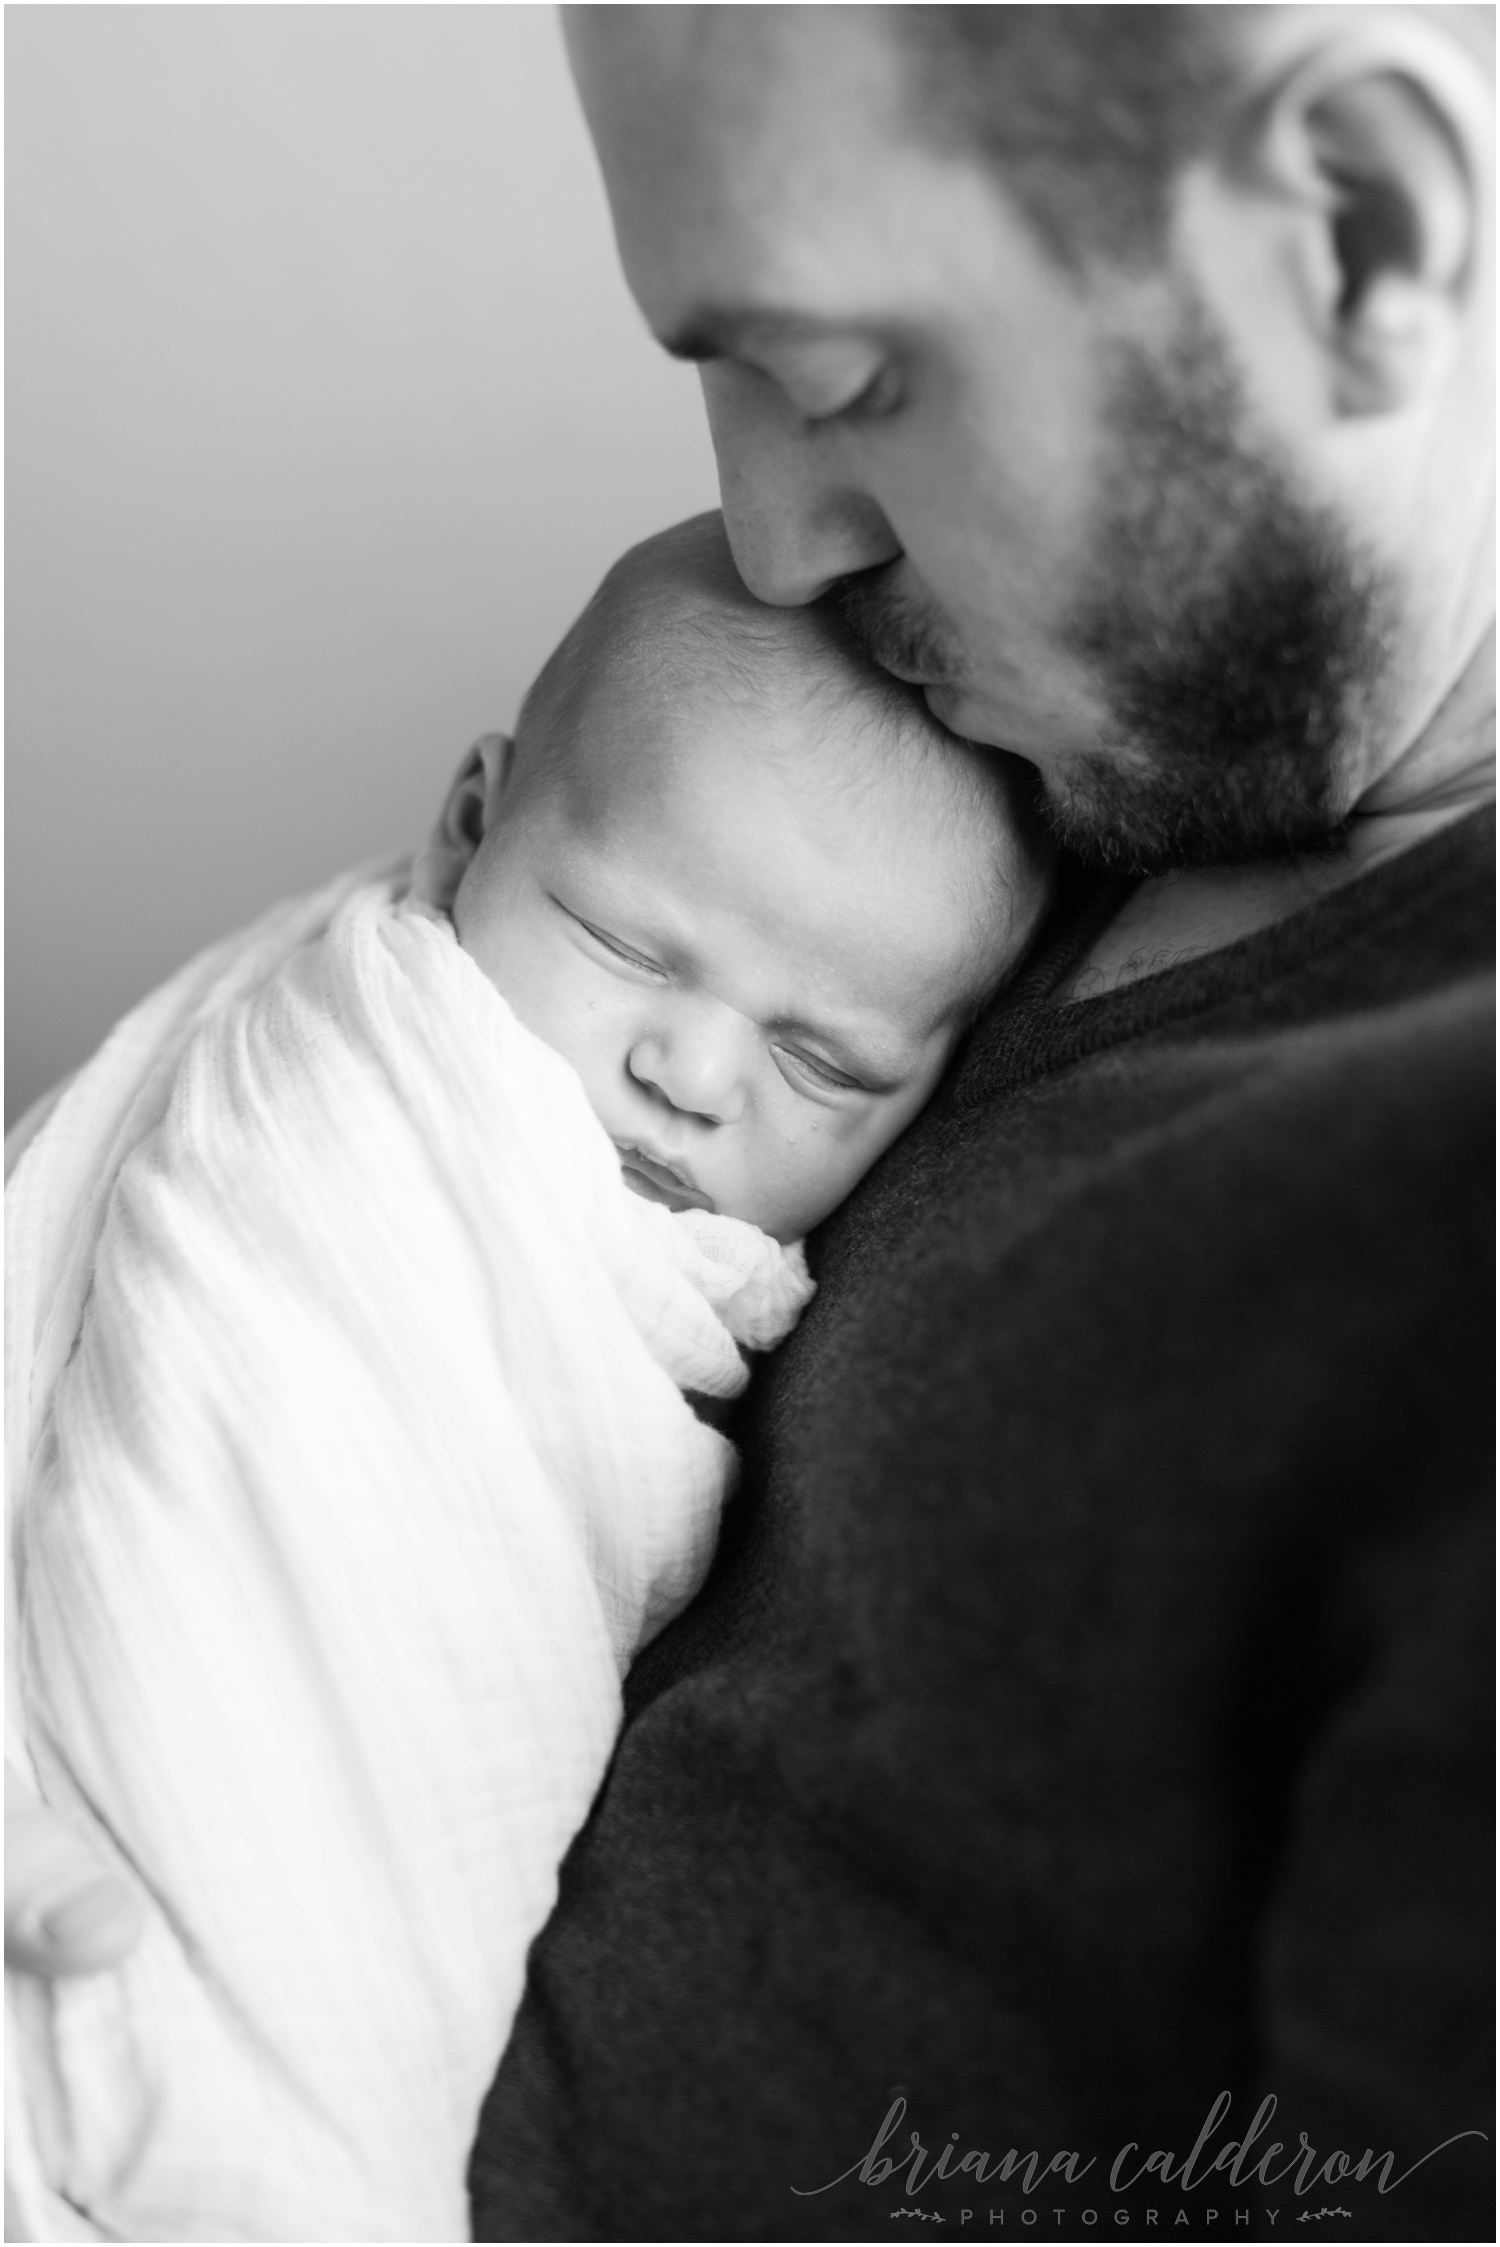 Lifestyle newborn photos by Briana Calderon Photography_0993.jpg